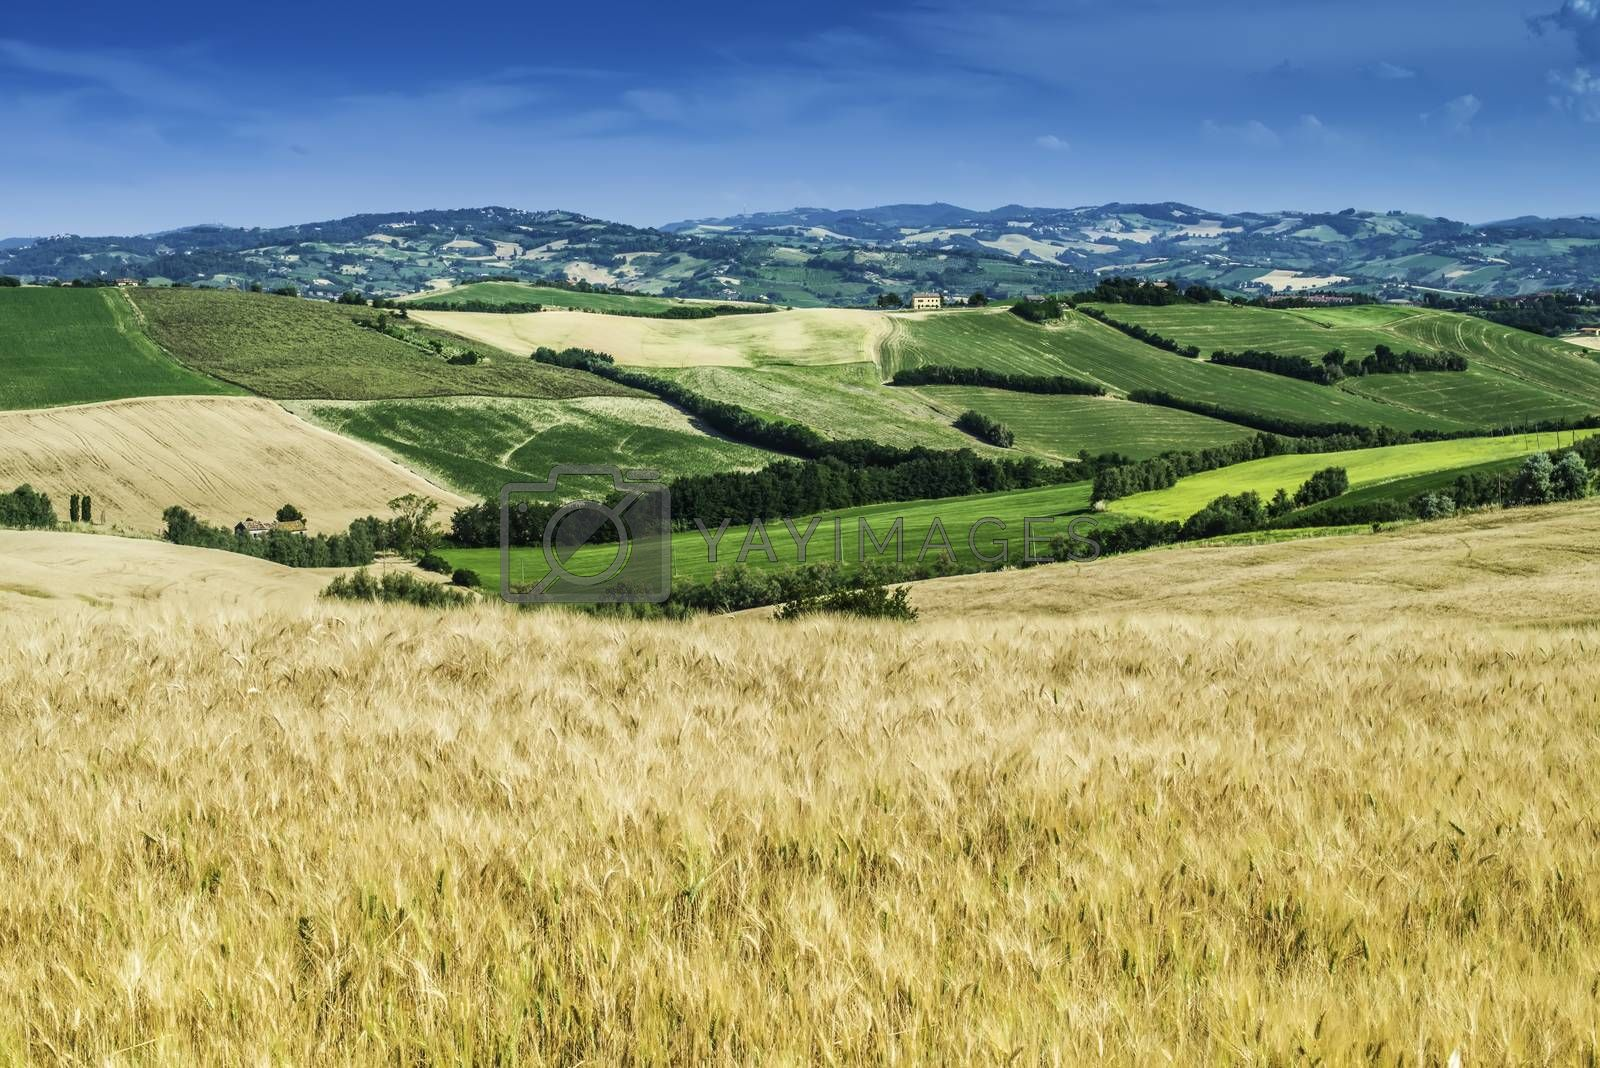 Cereal crops and farm in Tuscany, Italy